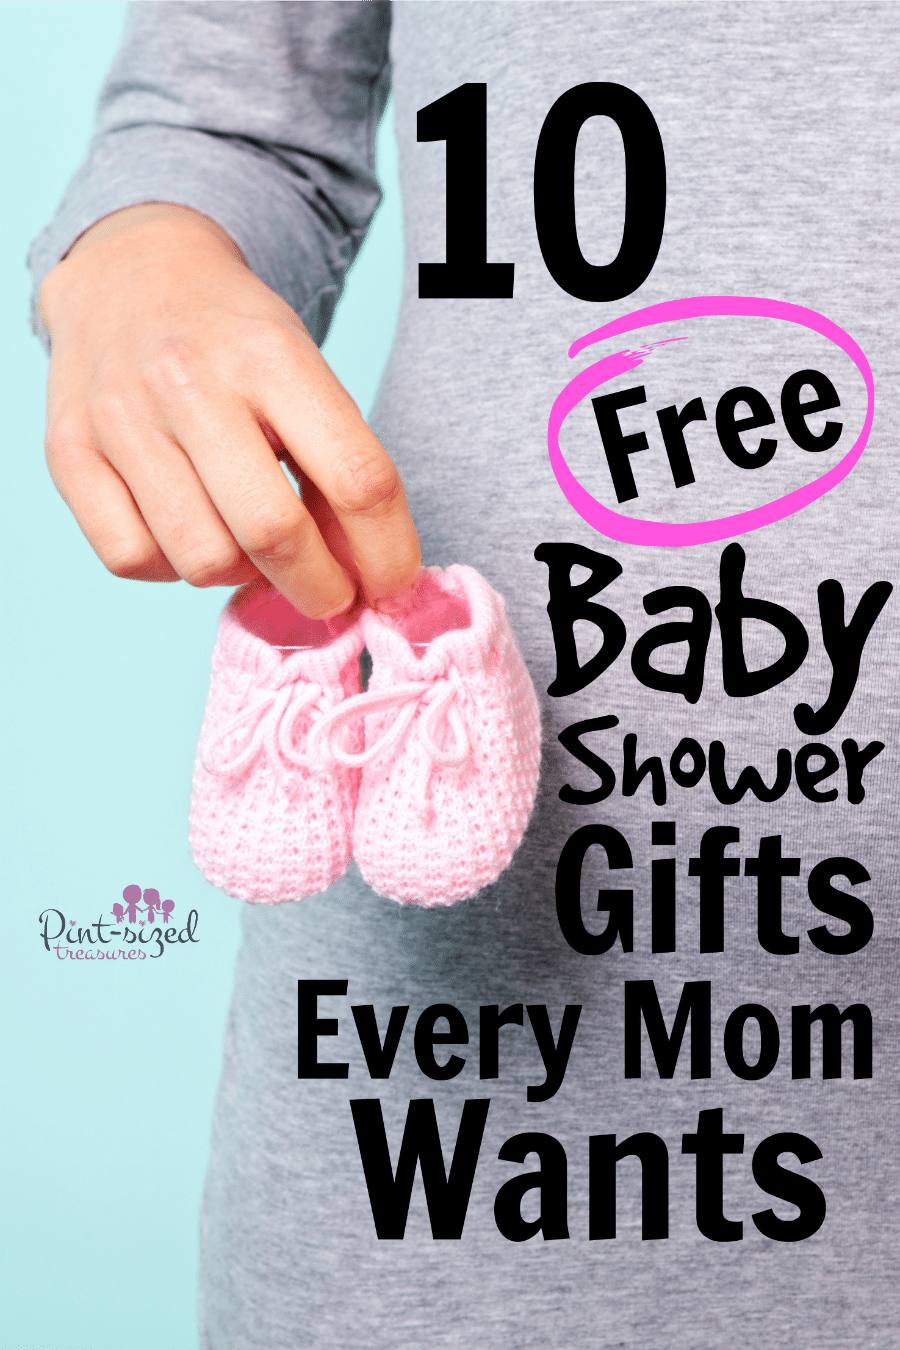 affordable ideas diy baby budget gifts shower good those babystiff a gift babyshowergifts for cheap on babyshowerideas